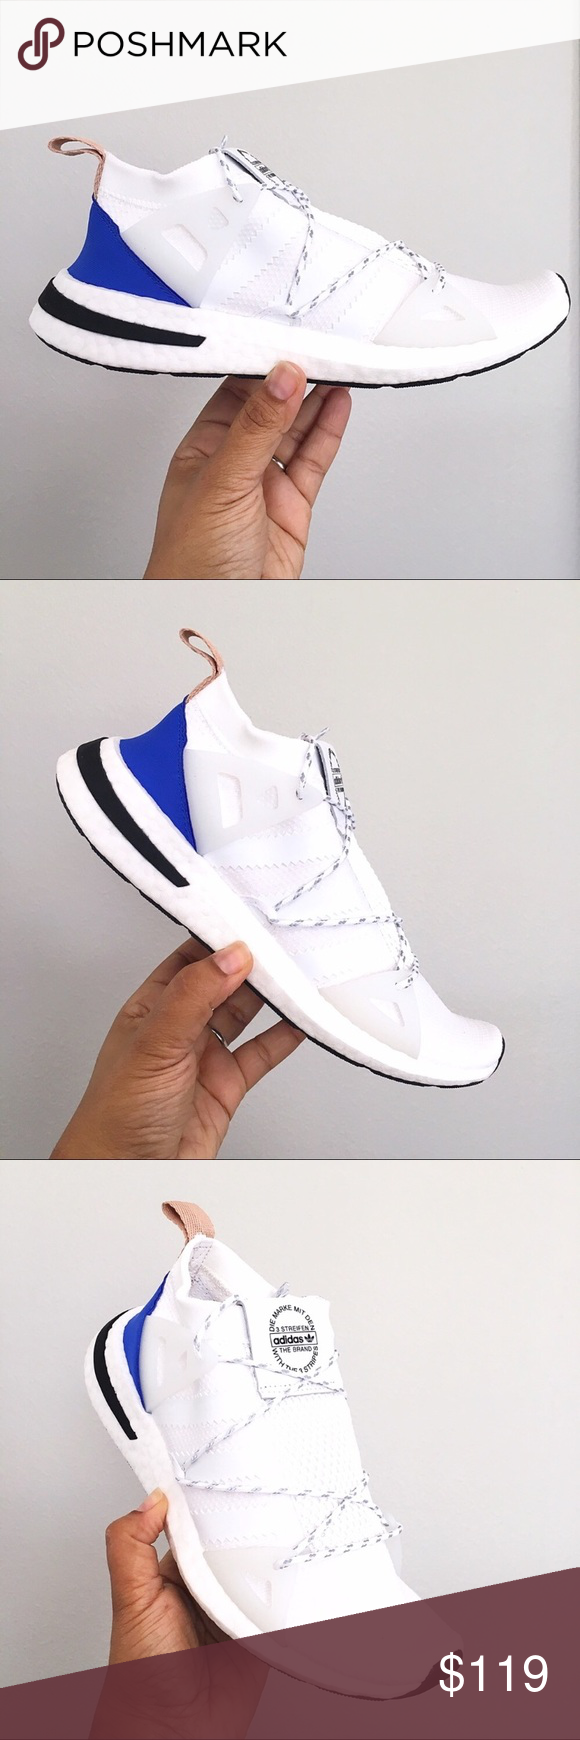 46fbddbc912278 Adidas Arkyn Cloud White Ash Pearl Women s shoes Brand New in Box with Lid  - Adidas